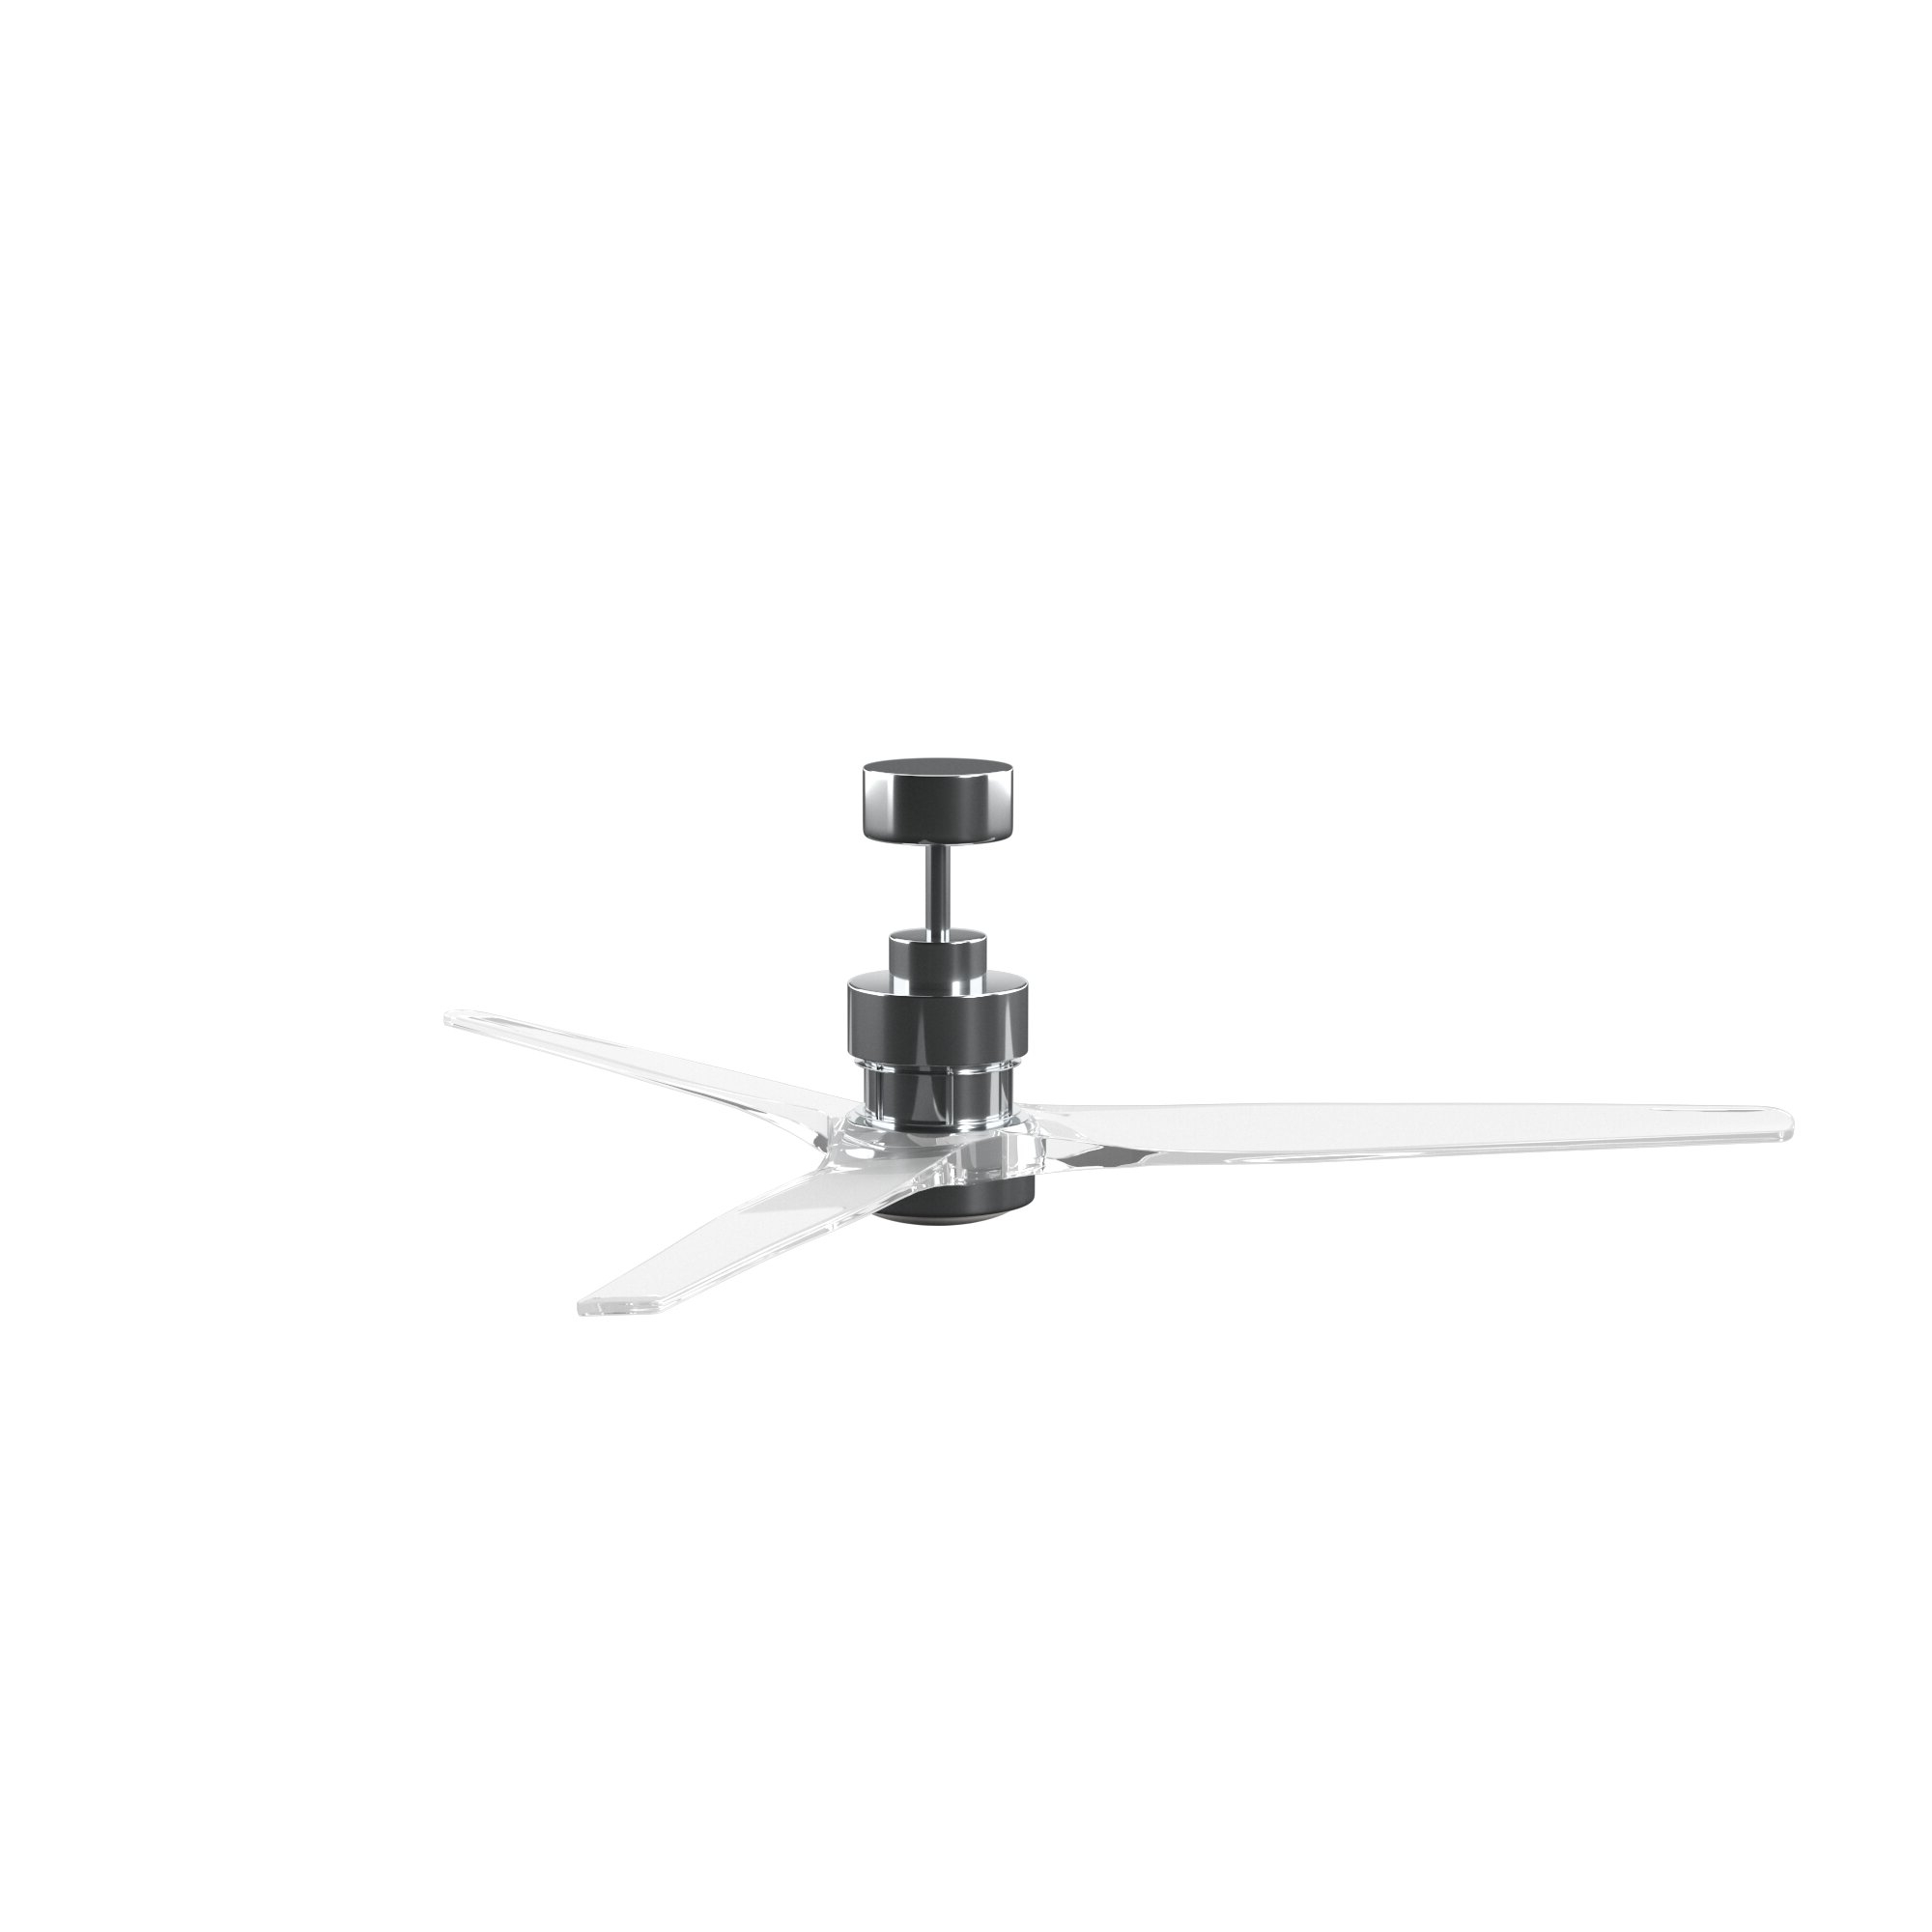 """60"""" Mcdaniels 3 Blade Ceiling Fan With Remote, Light Kit Included Intended For Favorite Corsa 3 Blade Ceiling Fans (Gallery 19 of 20)"""